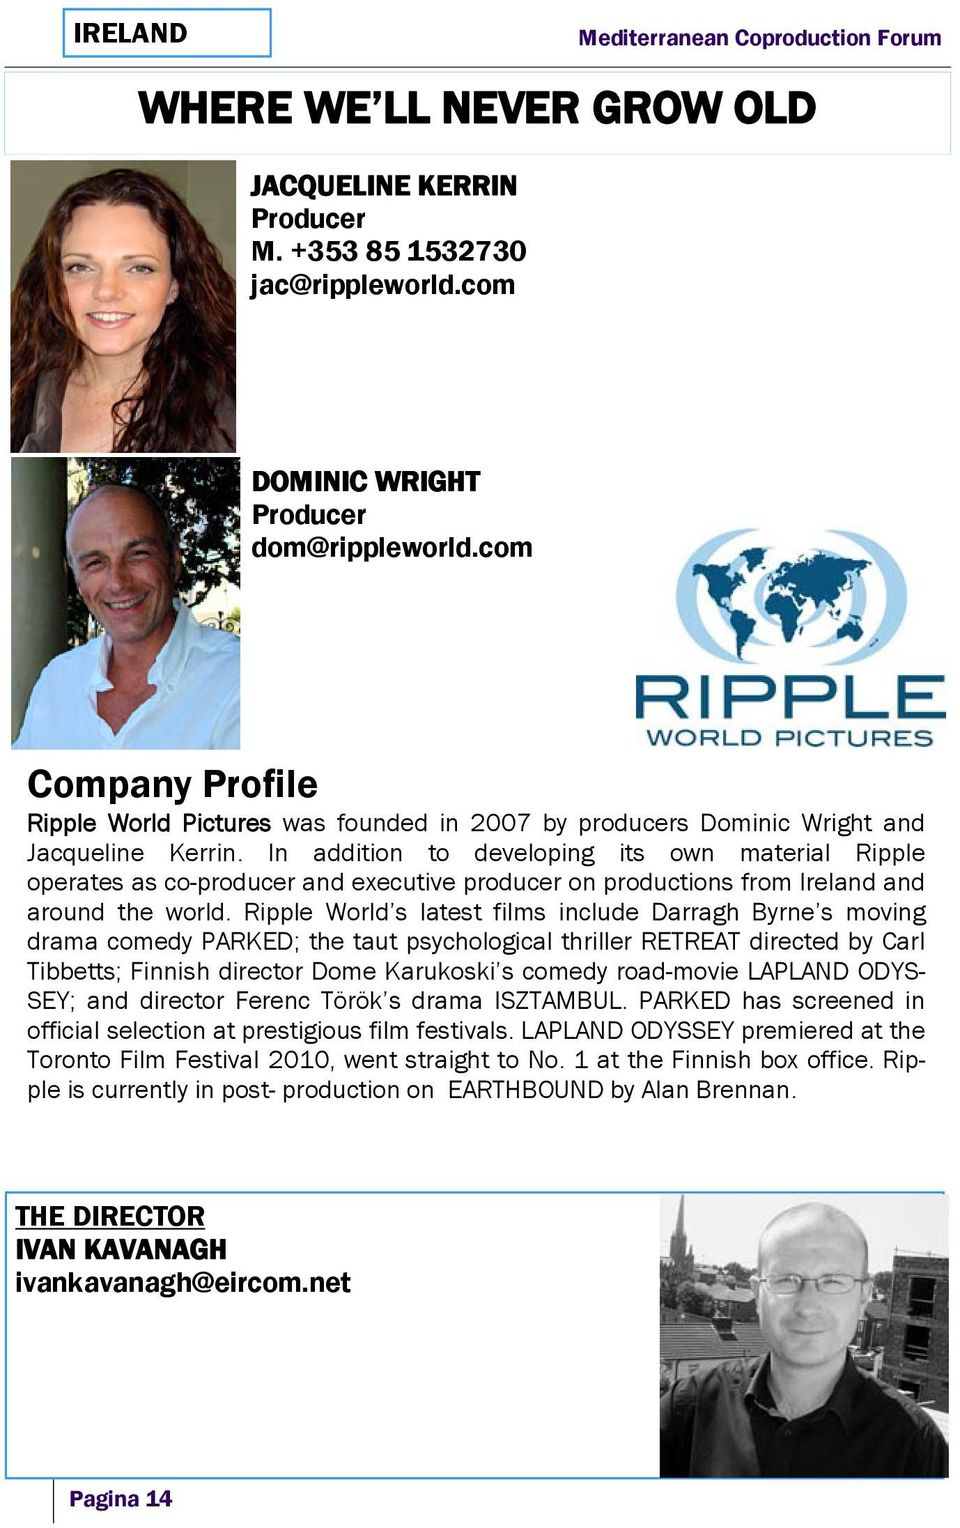 In addition to developing its own material Ripple operates as co-producer and executive producer on productions from Ireland and around the world.